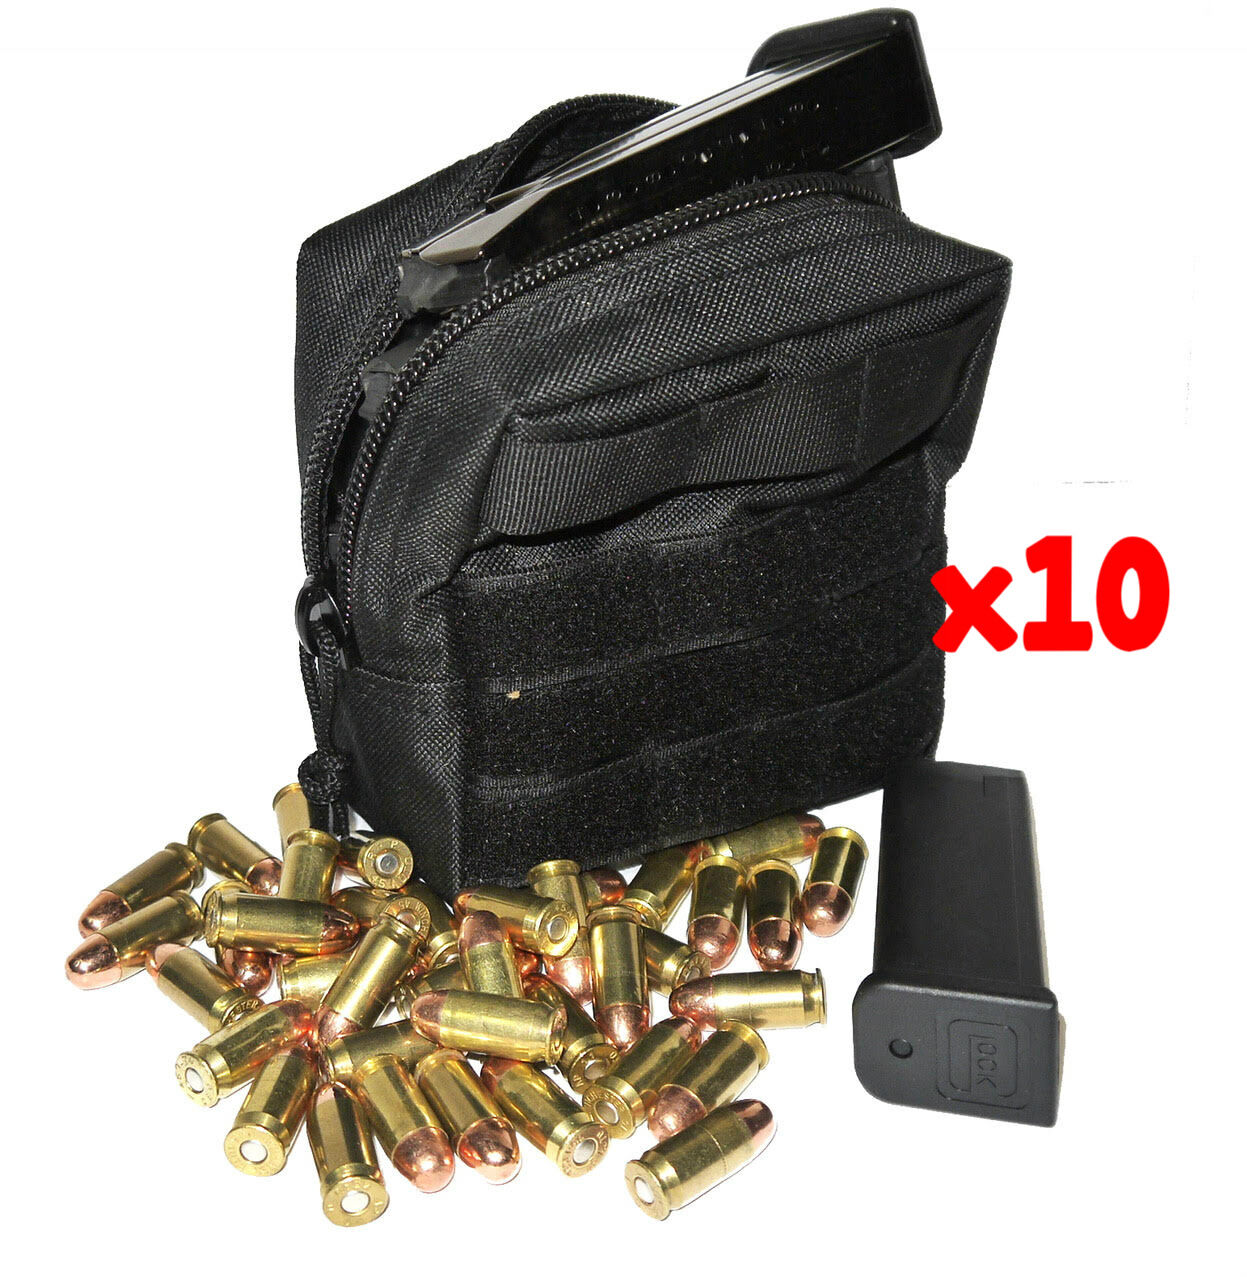 (10) .40 S&W AMMO MODULAR MOLLE UTILITY POUCH FRONT HOOK LOOP STRAP 40 S&W